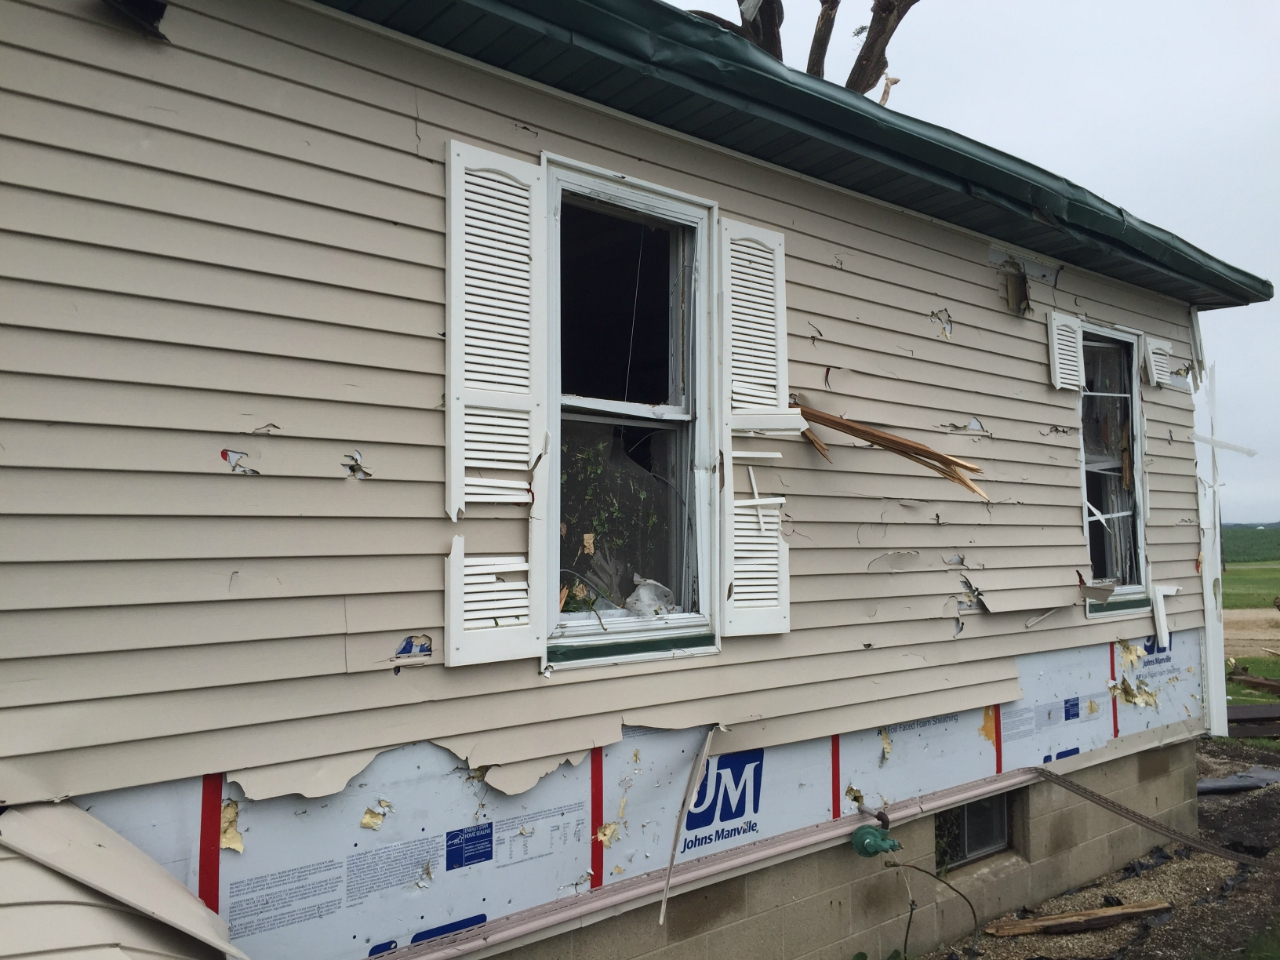 Picture of damage in siding